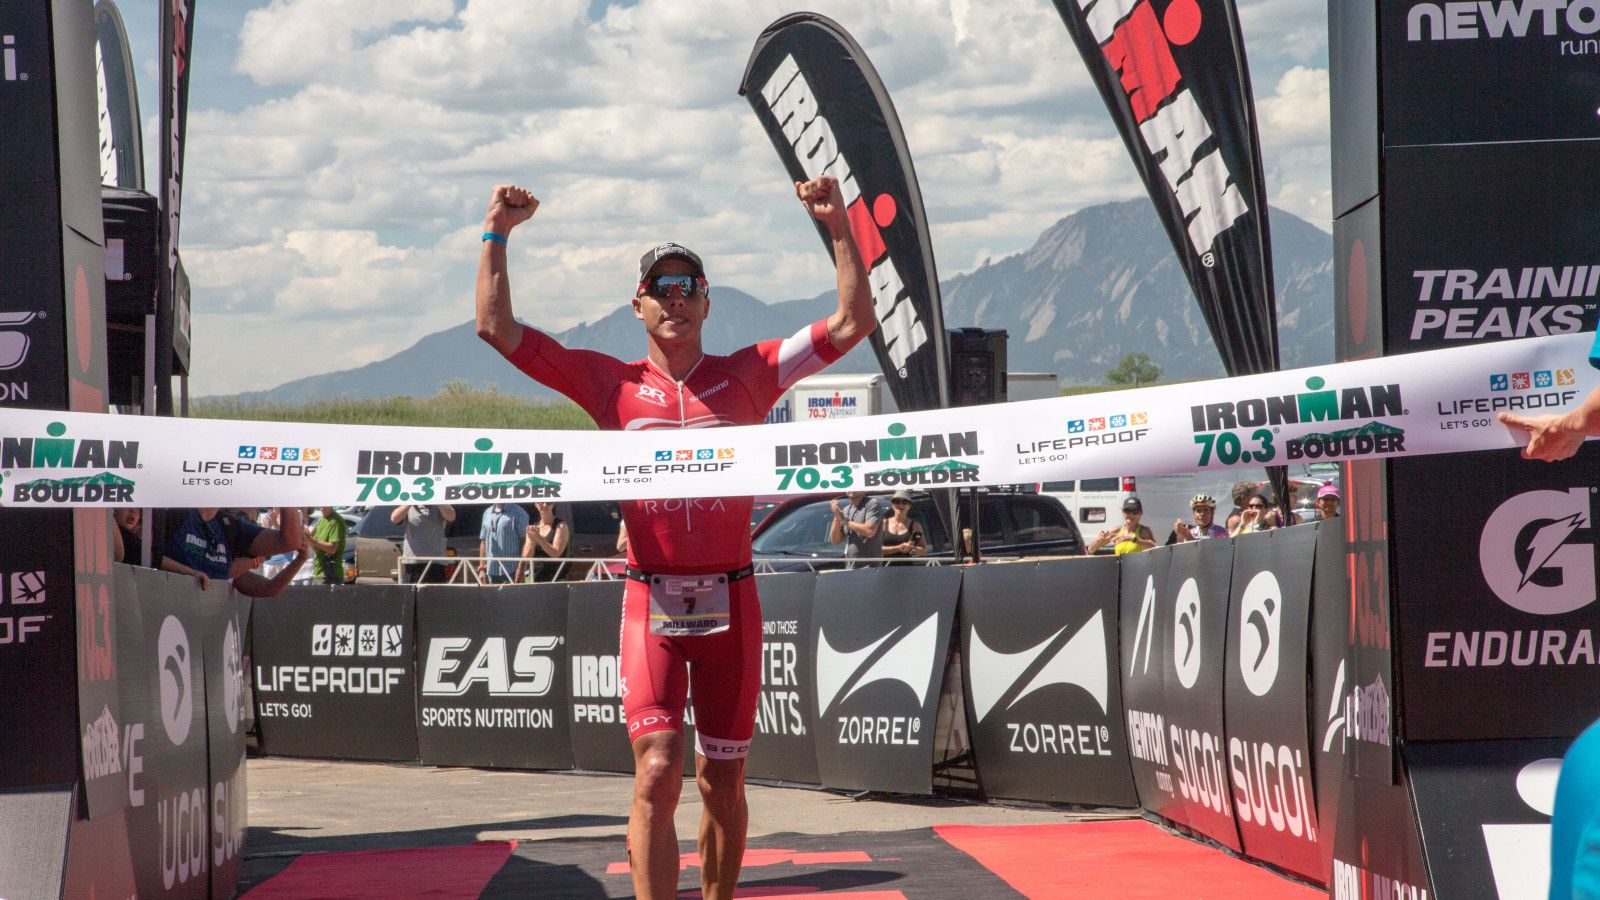 Ironman 70.3 Boulder was my first US race of the 2015 exercising season. Its always nice to sleep in your own bed, and roll out the door on race morning to the Boulder Reservoir, where this race takes place. The plan heading into this race, along with Ironman Coeur d'Alene two weeks later, was to race smart and pick up as many Kona qualifying points as possible. My day went really well, and I came away with the win. It feels surreal. To be honest, Ironman Coeur d'Alene was the focus out of…